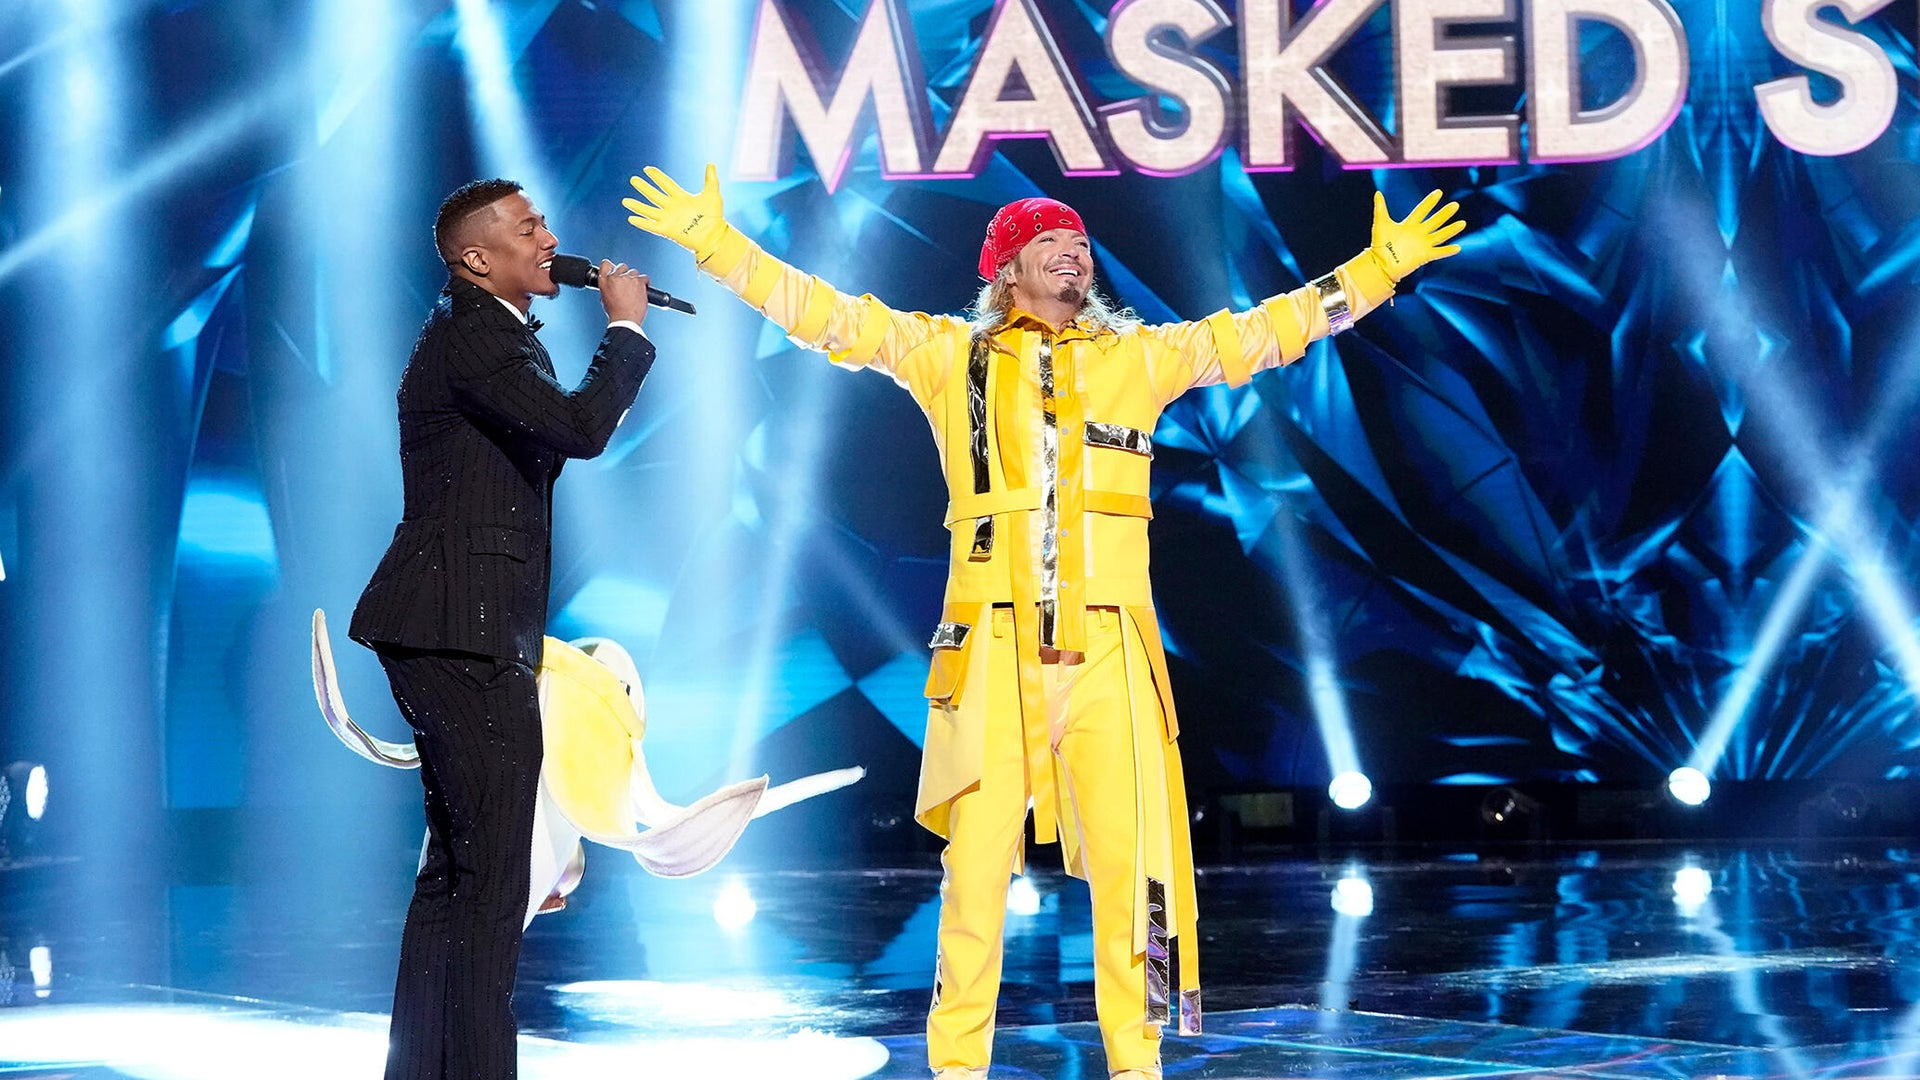 Nick Cannon, Bret Michaels, The Masked Singer